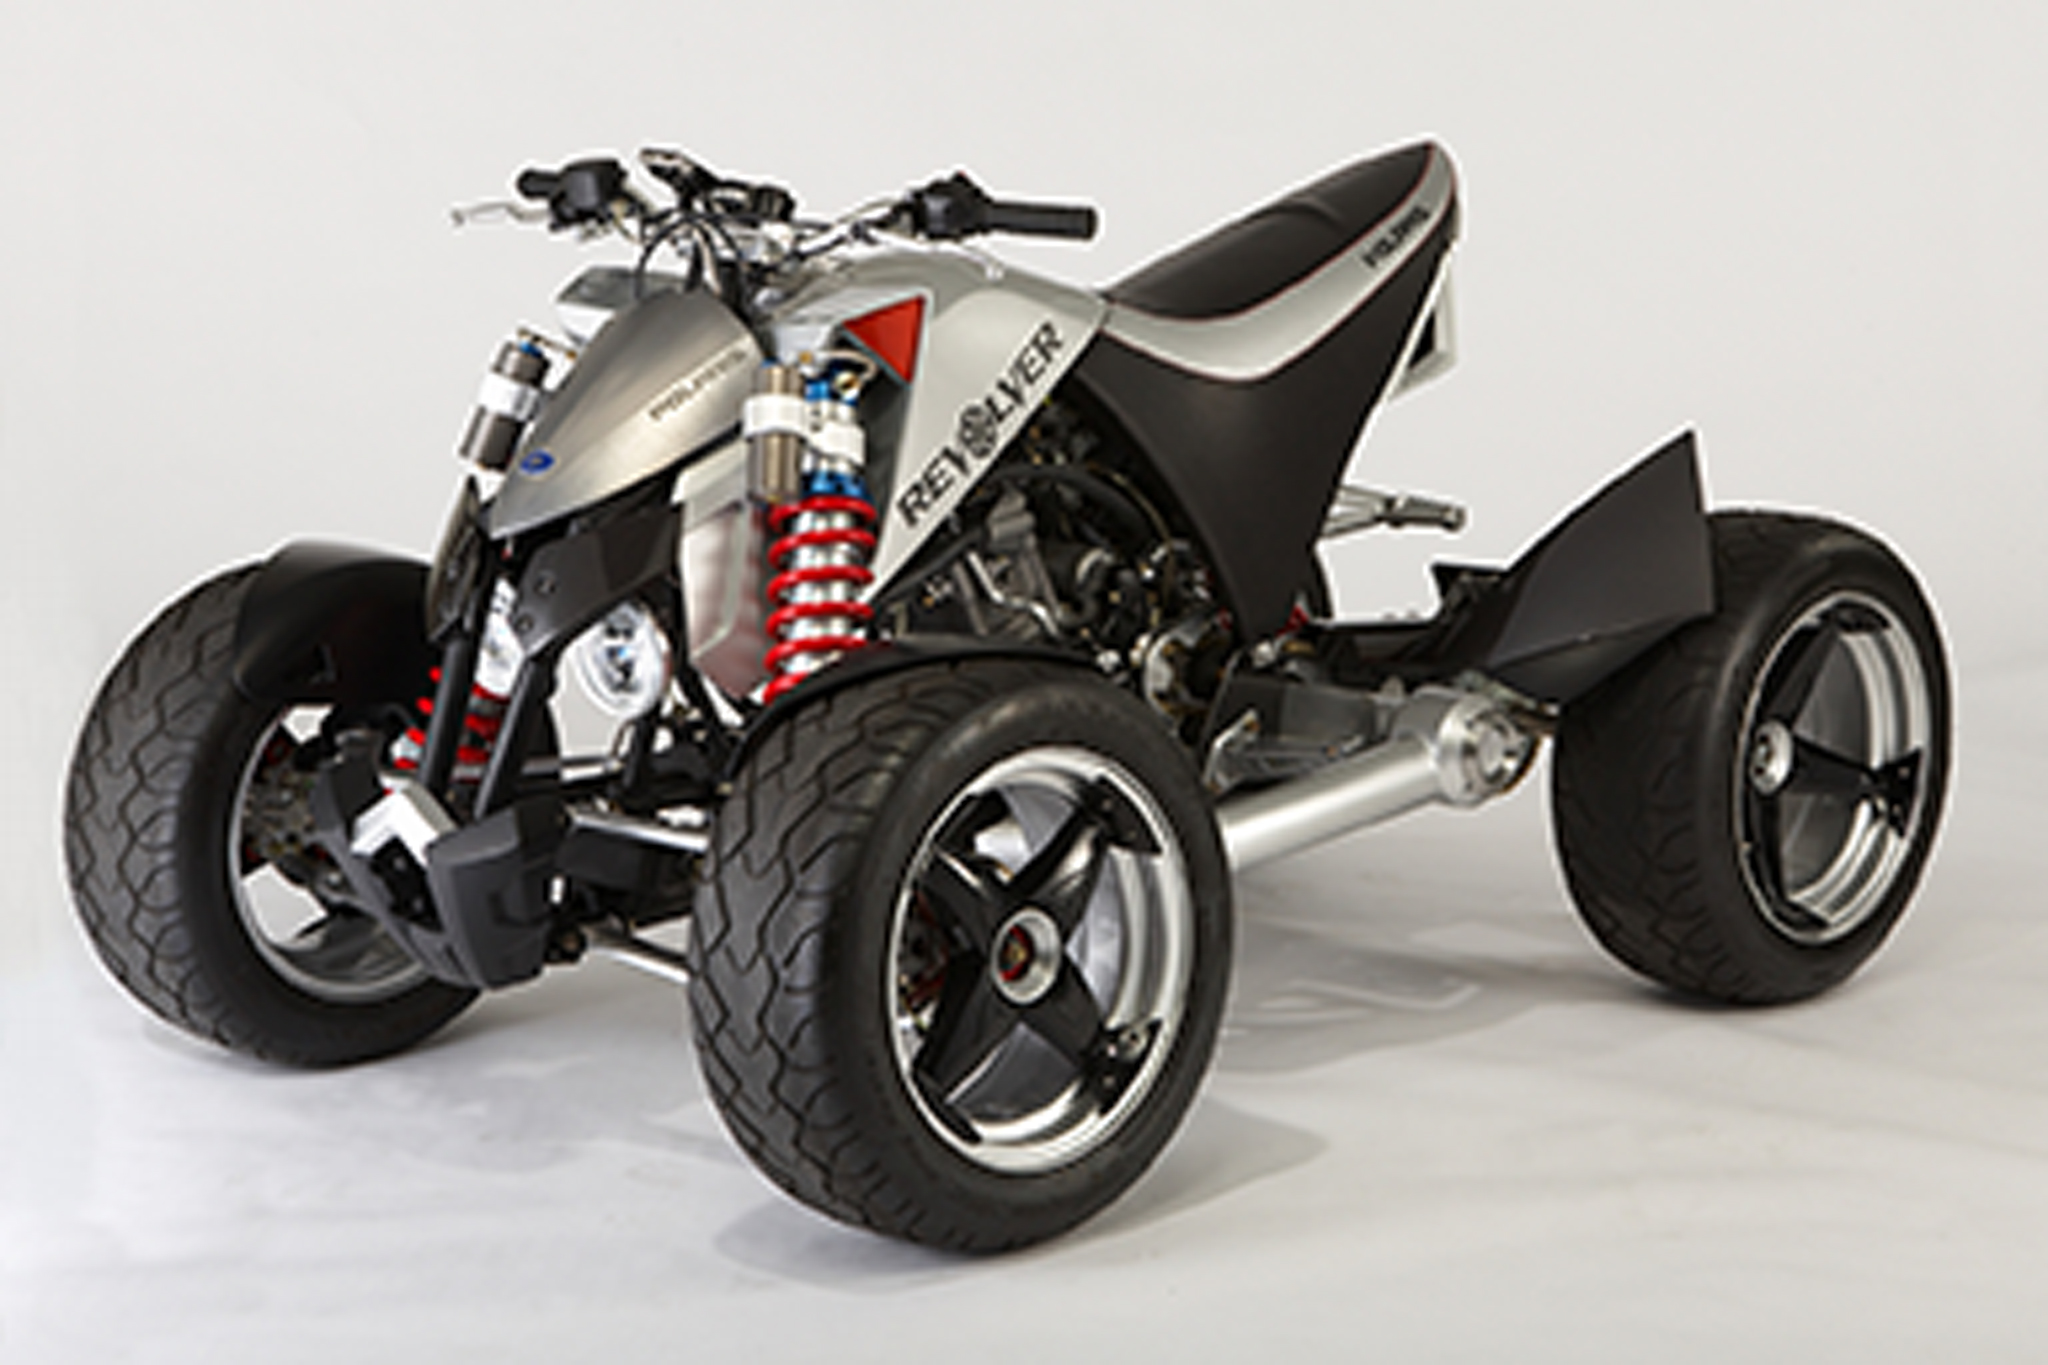 943860d340f Revolver Concept by Polaris Industries